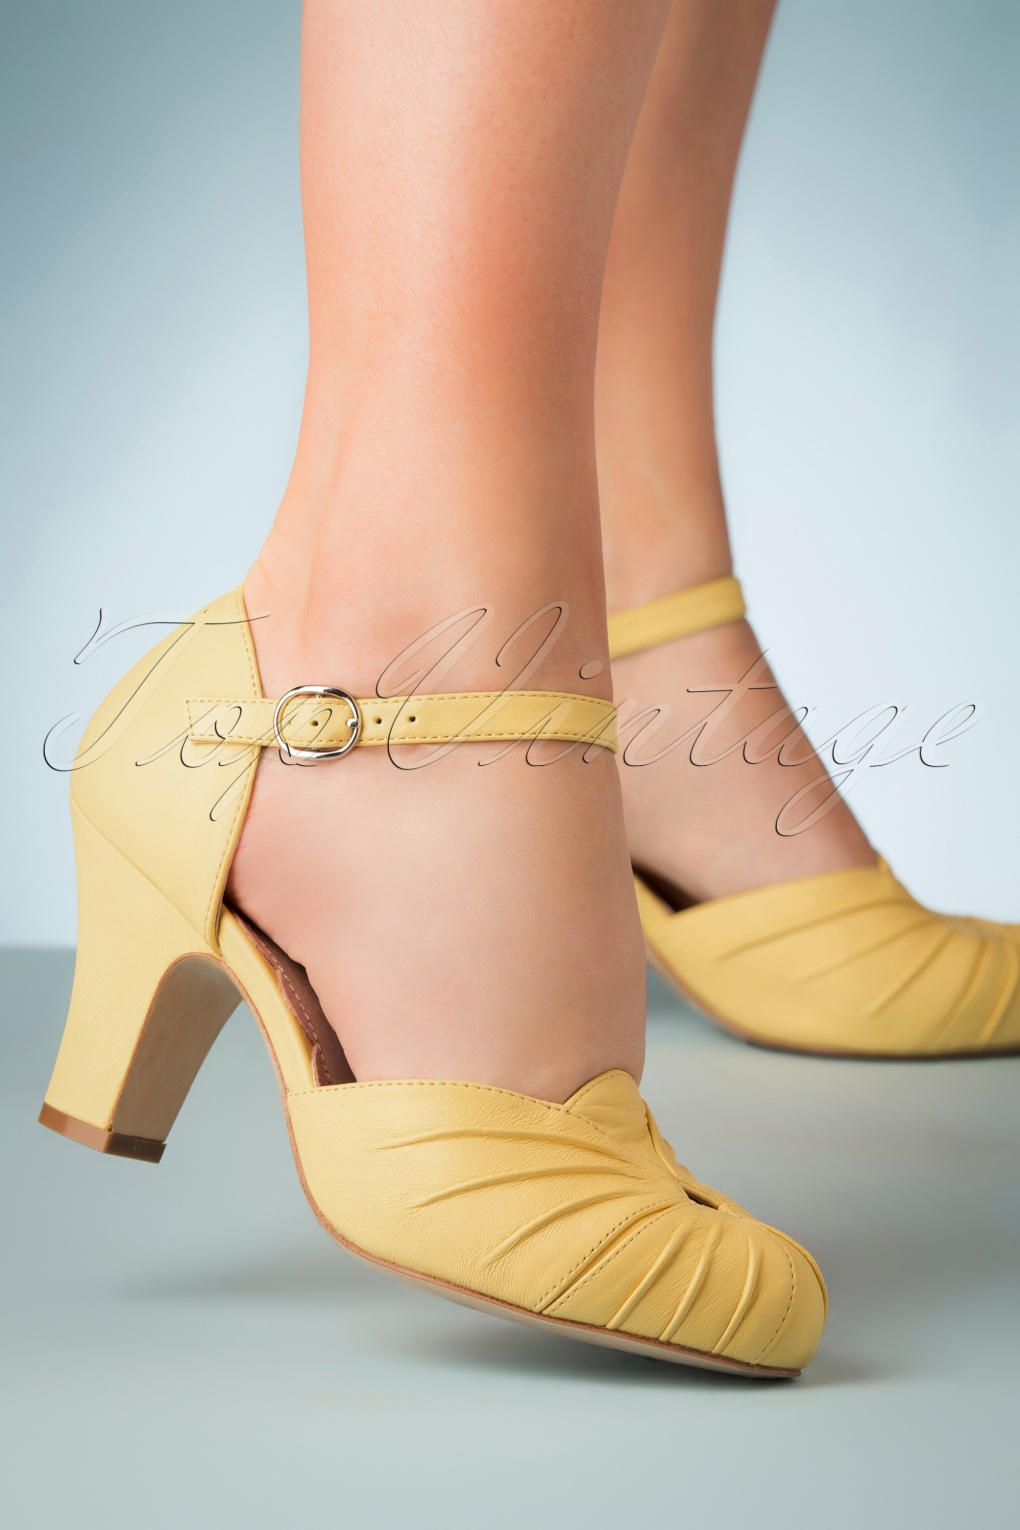 10 Popular 1940s Shoes Styles for Women 40s Amber Mary Jane Pumps in Pastel Yellow �151.28 AT vintagedancer.com